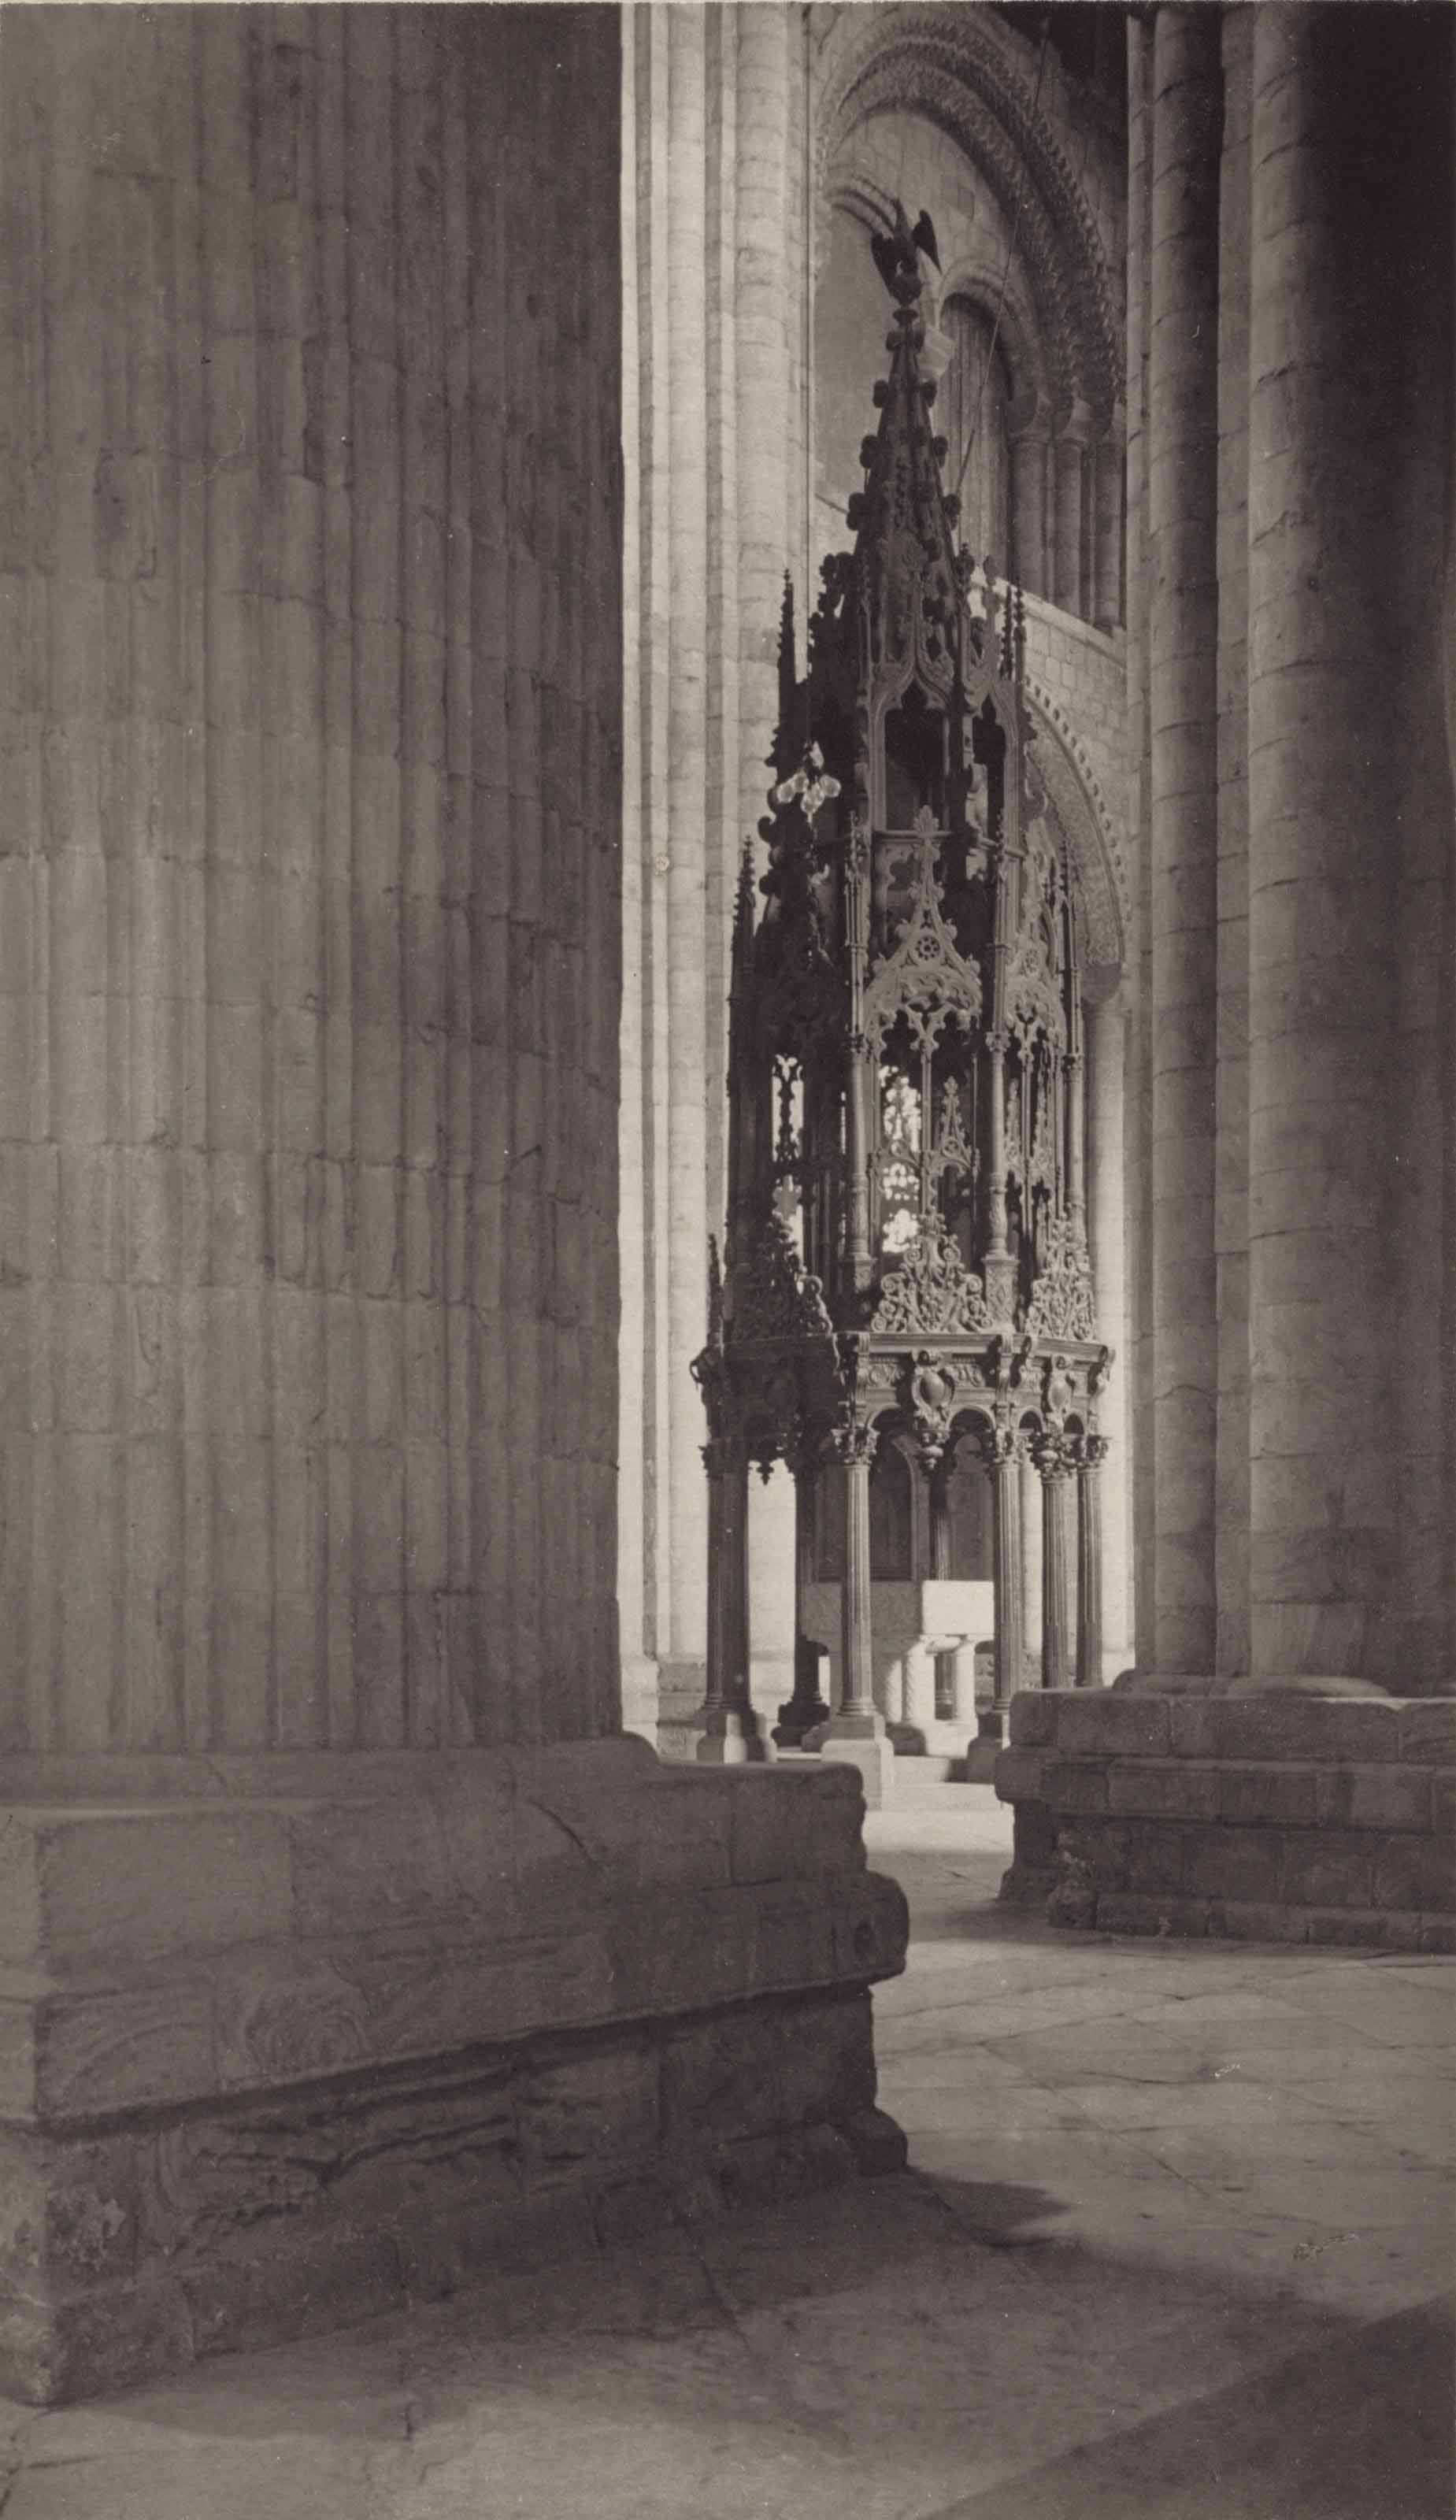 Durham Cathedral, Nave, Aisle and Font, c. 1900